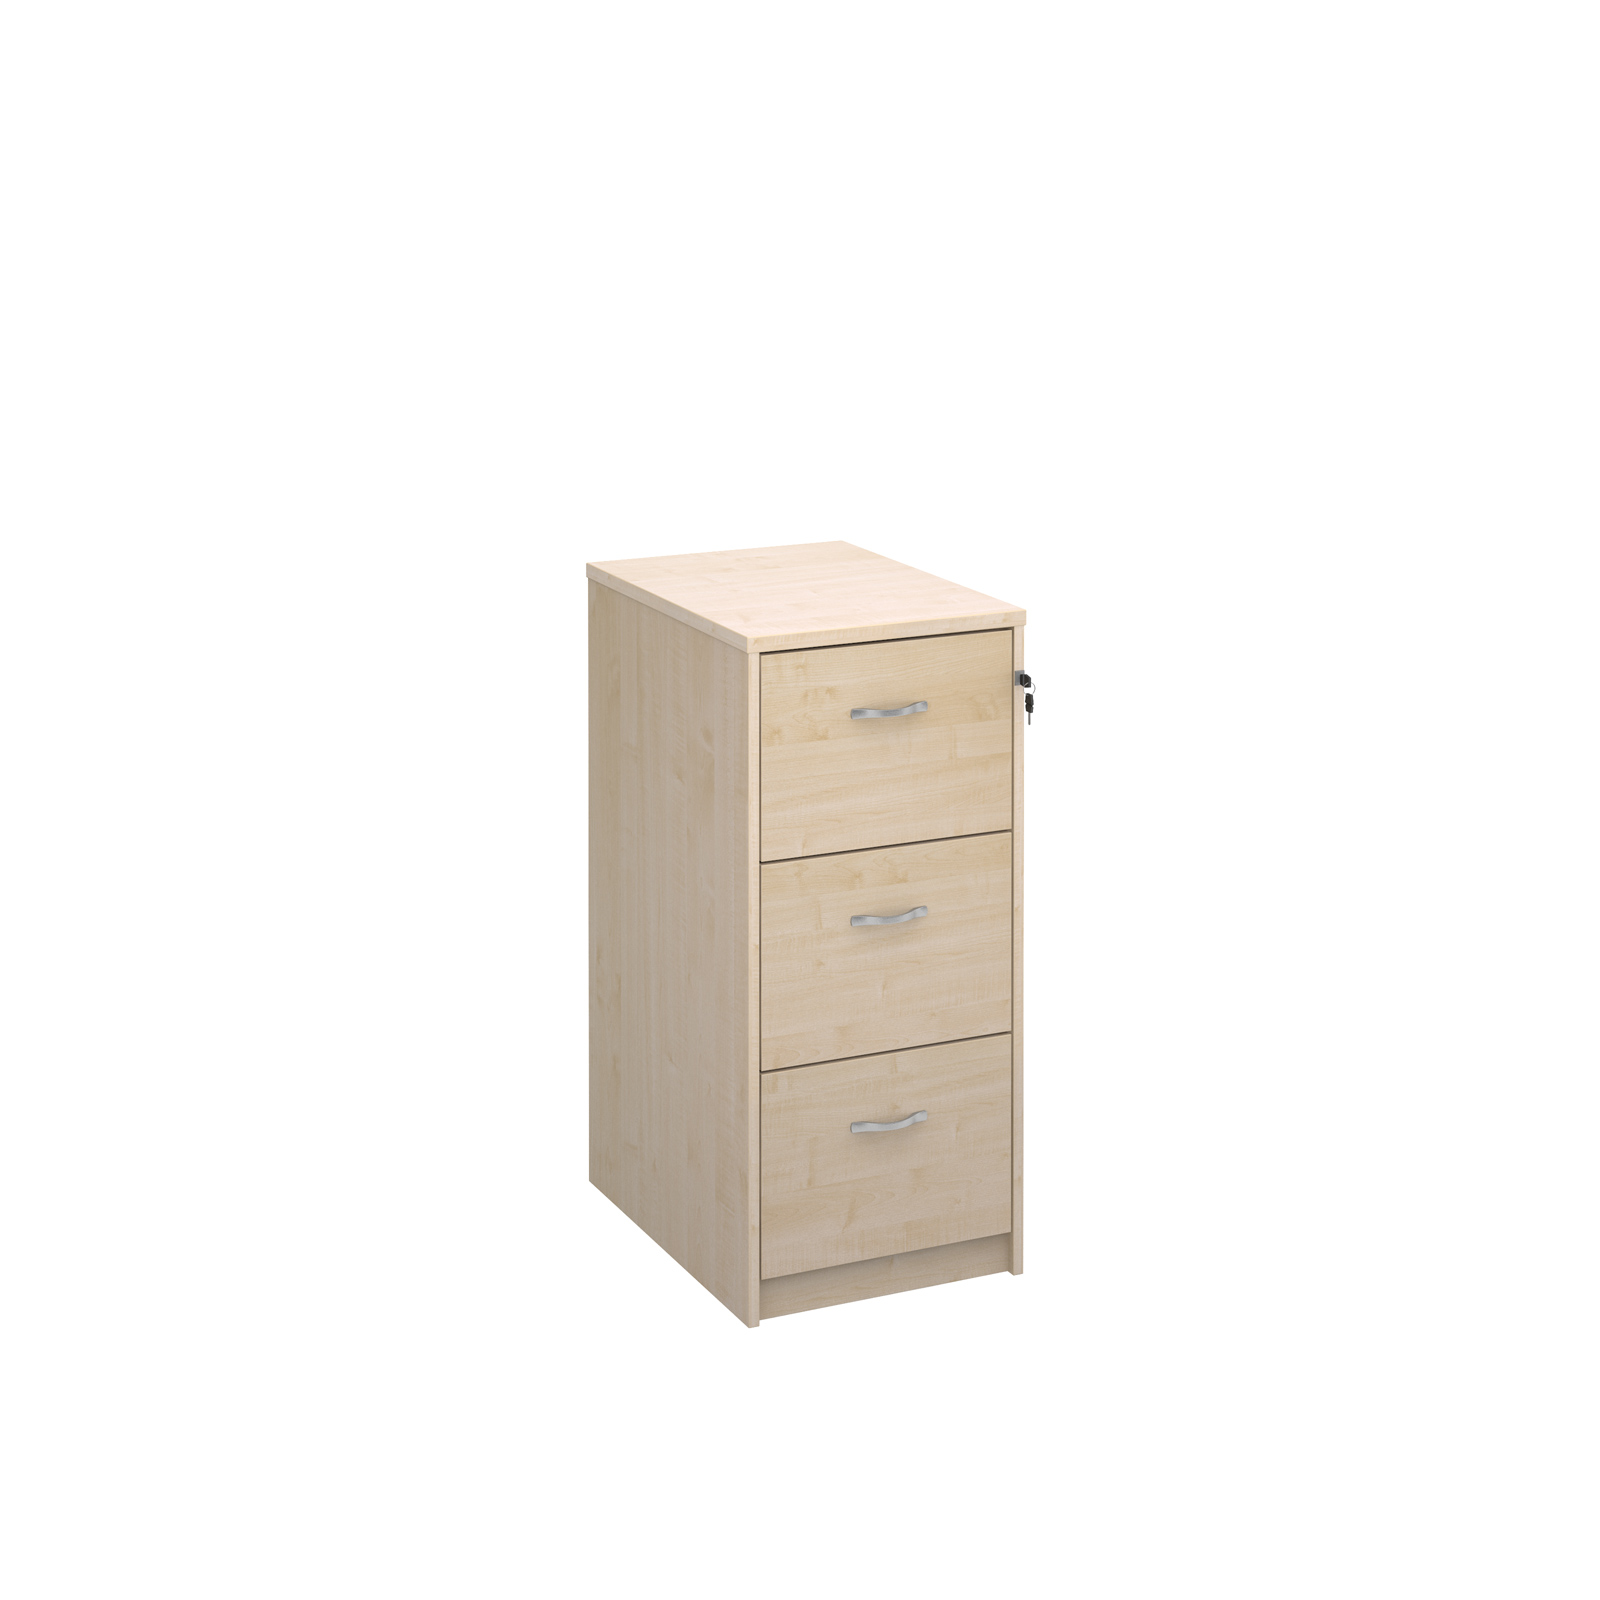 Wood Wooden 3 drawer filing cabinet with silver handles 1045mm high - maple